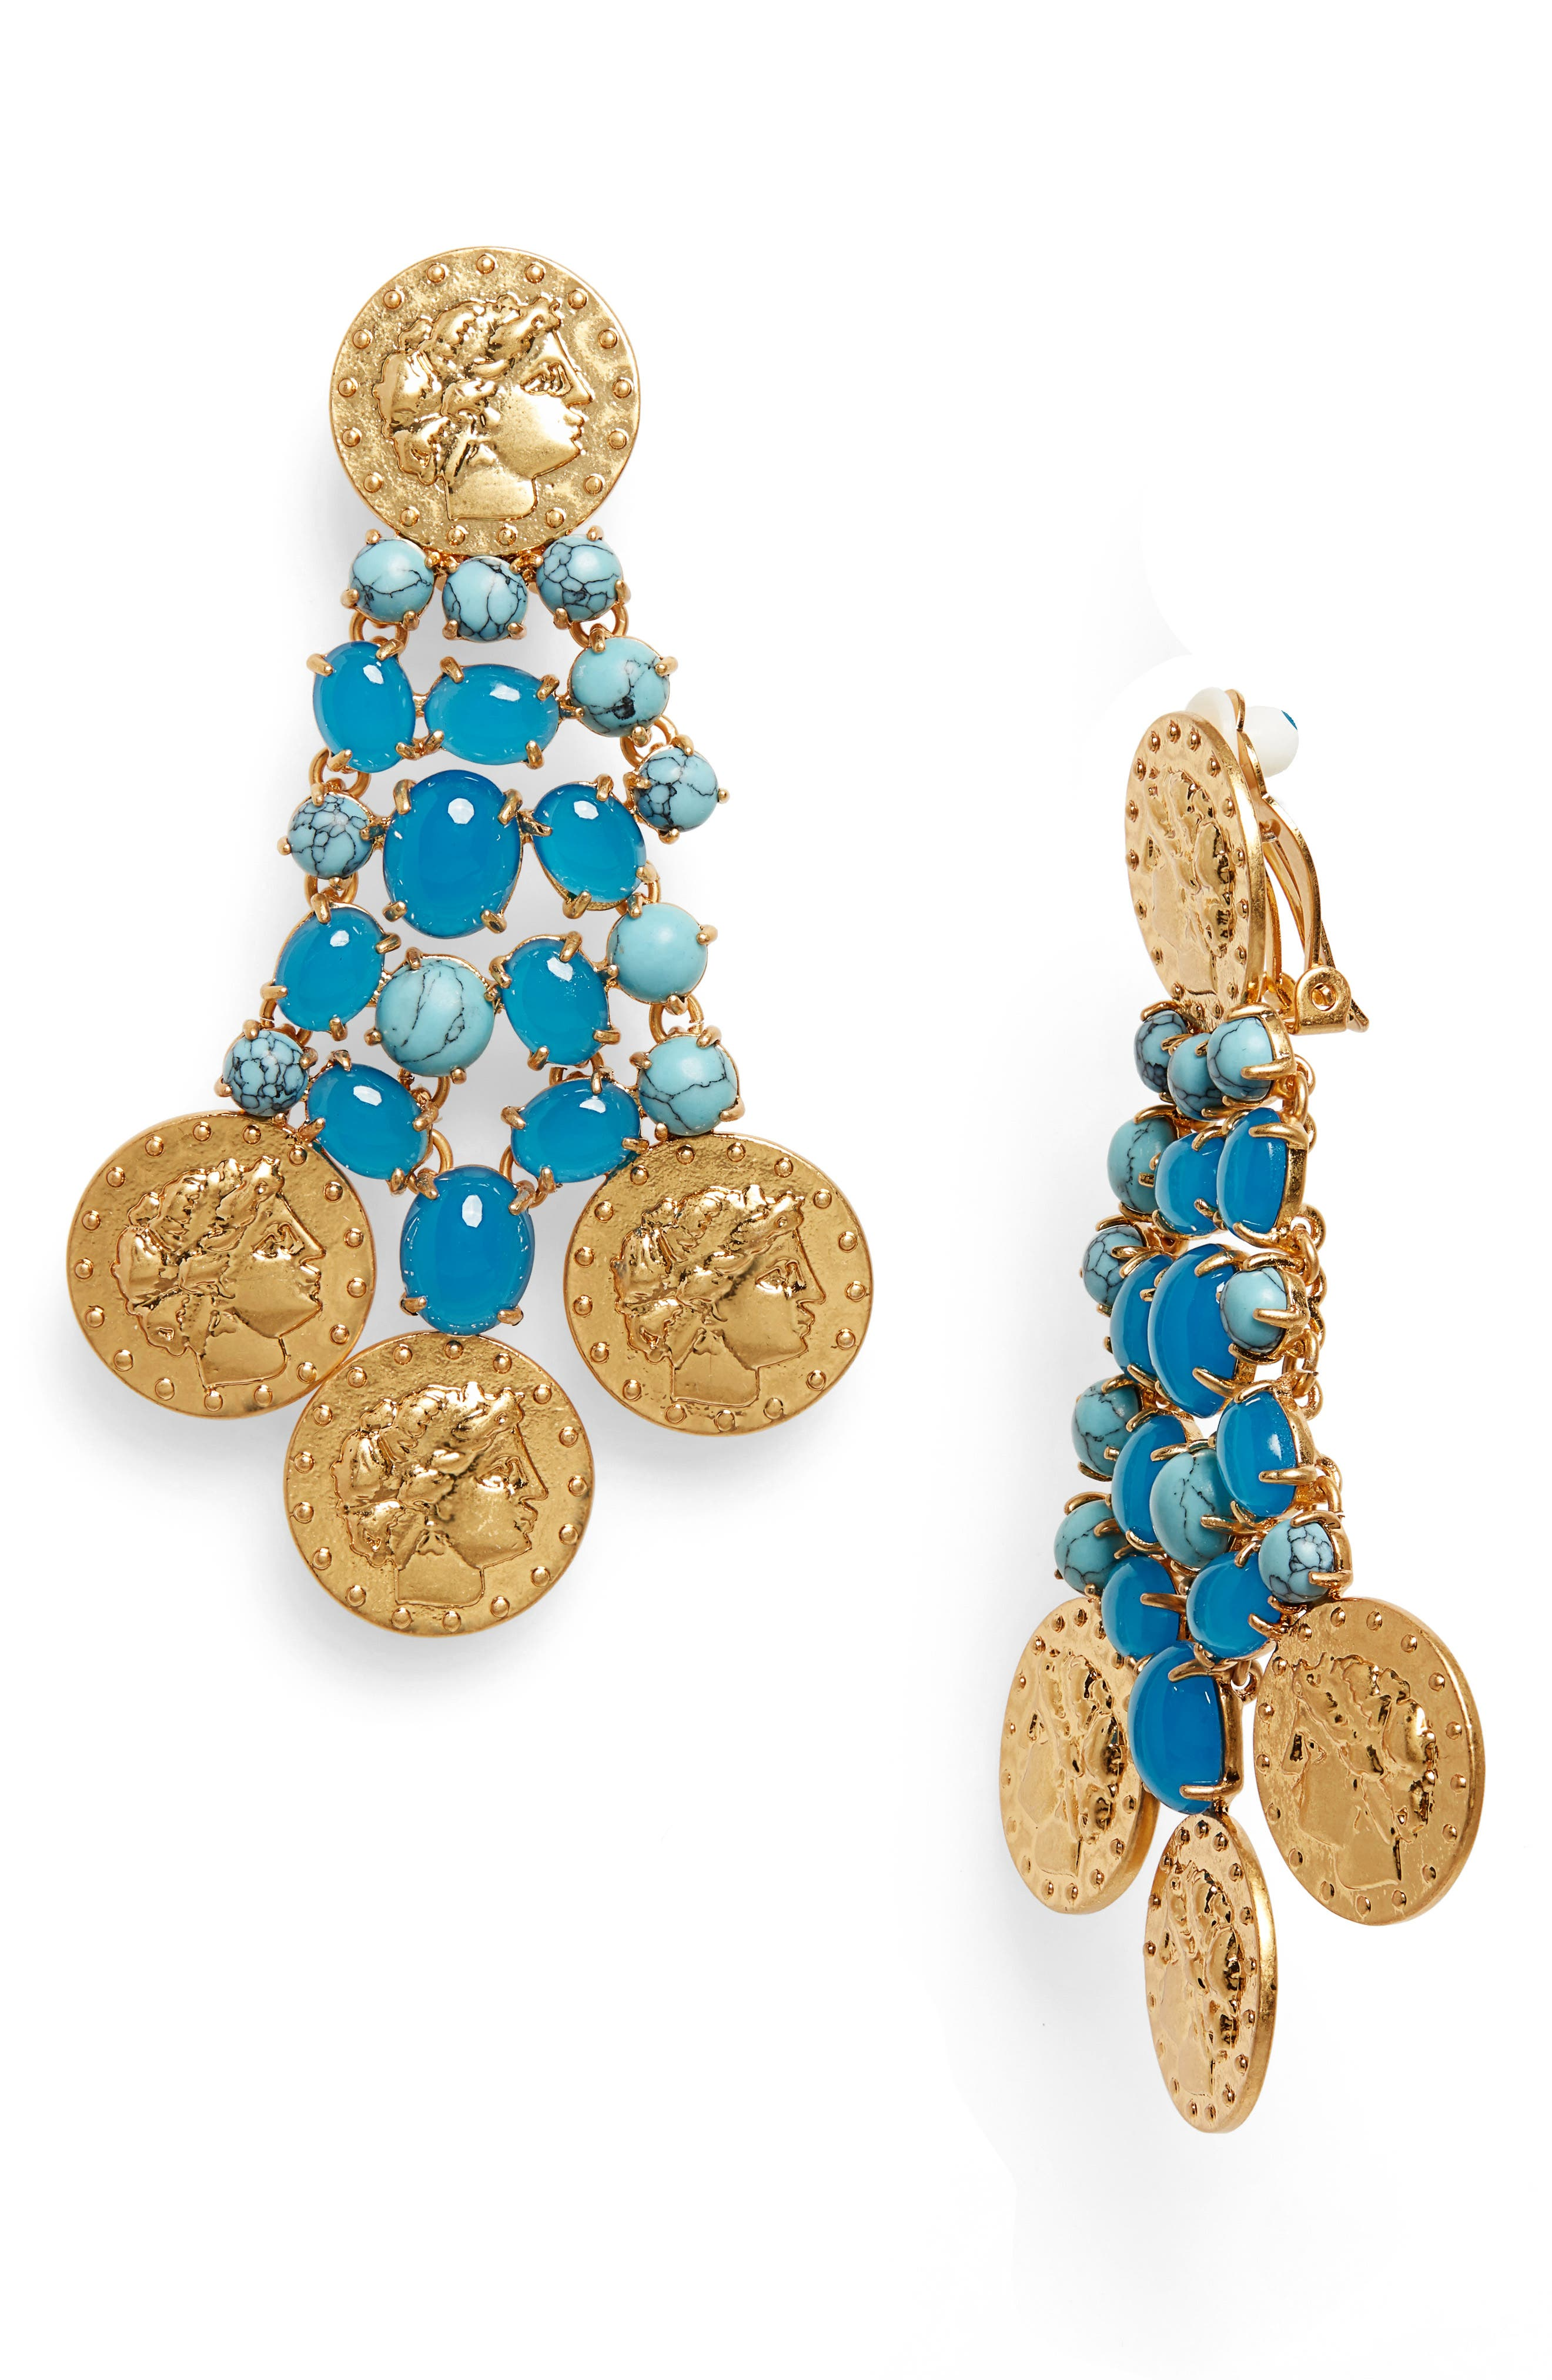 Coin Drop Earrings,                             Main thumbnail 1, color,                             ROLLED BRASS 59 / TURQUOISE